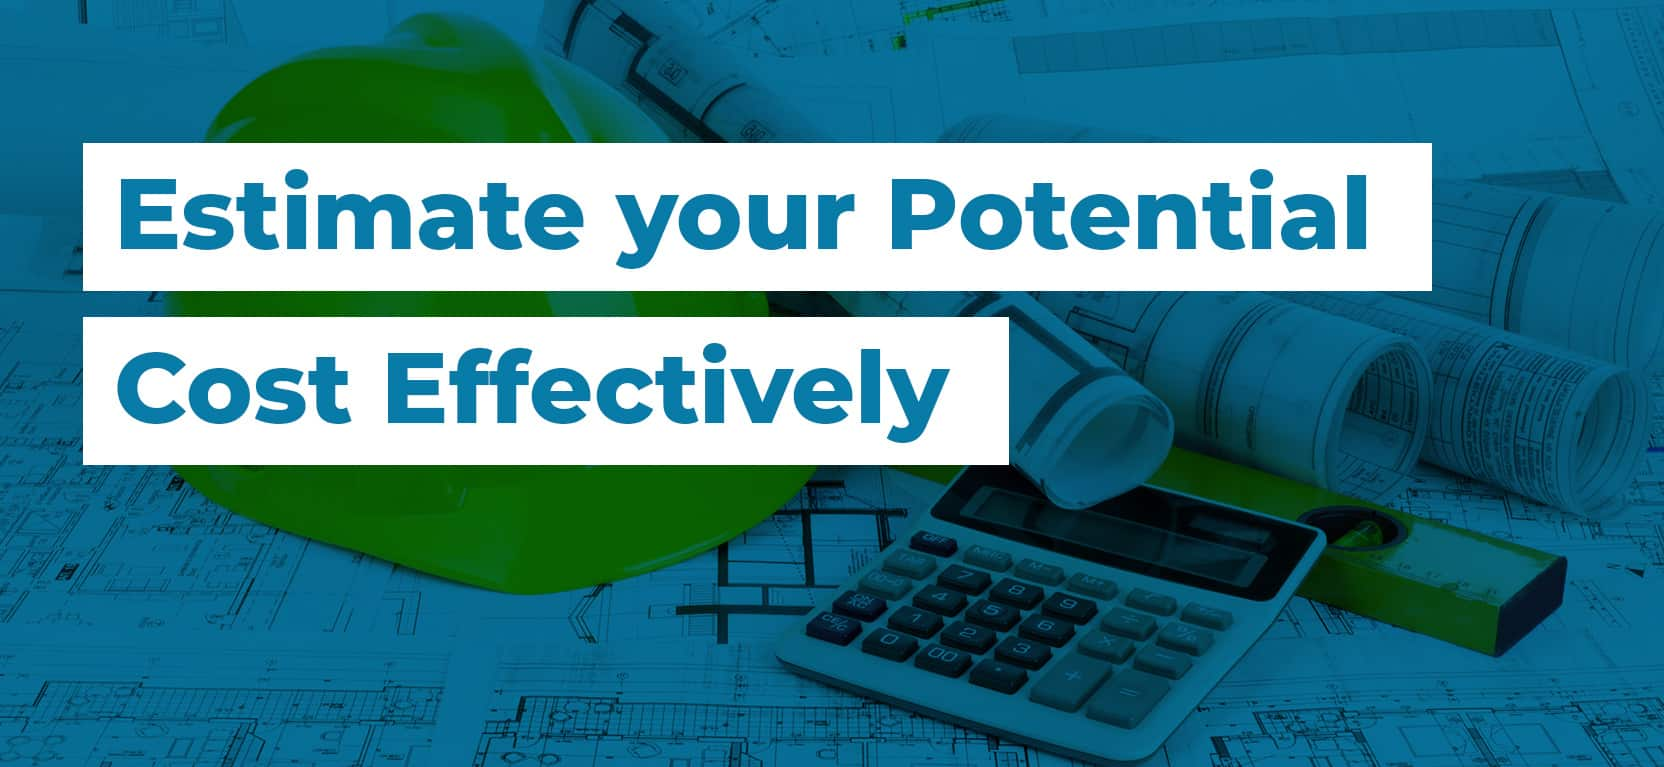 10 Estimate your Potential Cost Effectively2